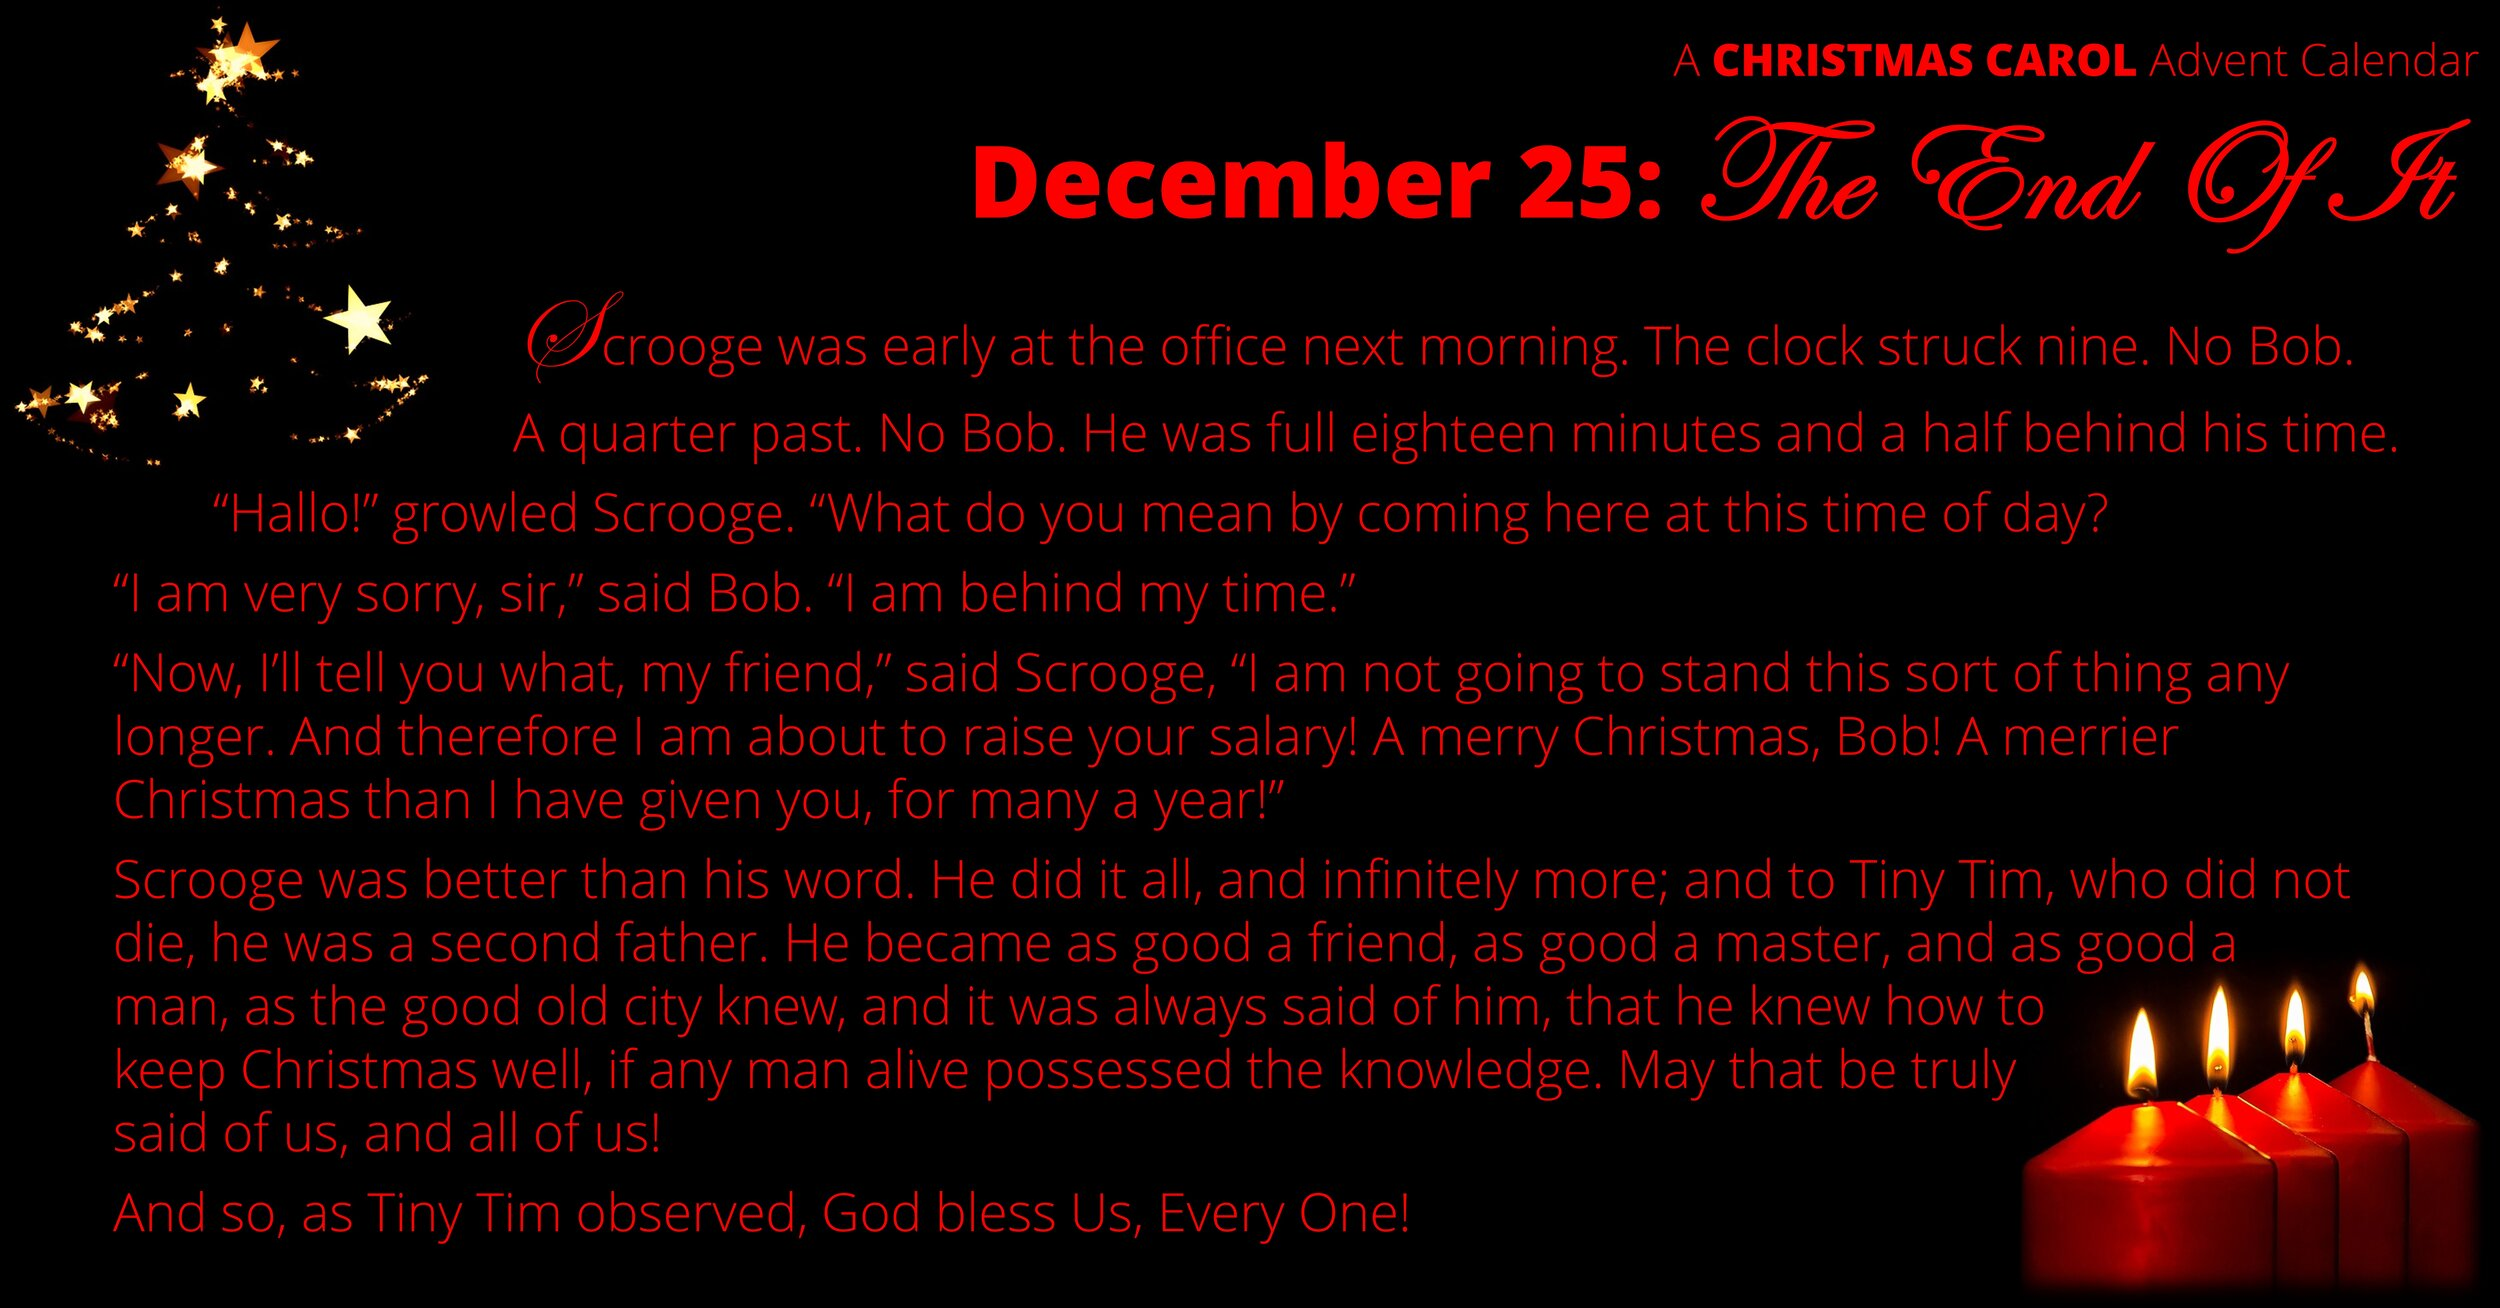 Dec25 - The End Of It.jpg